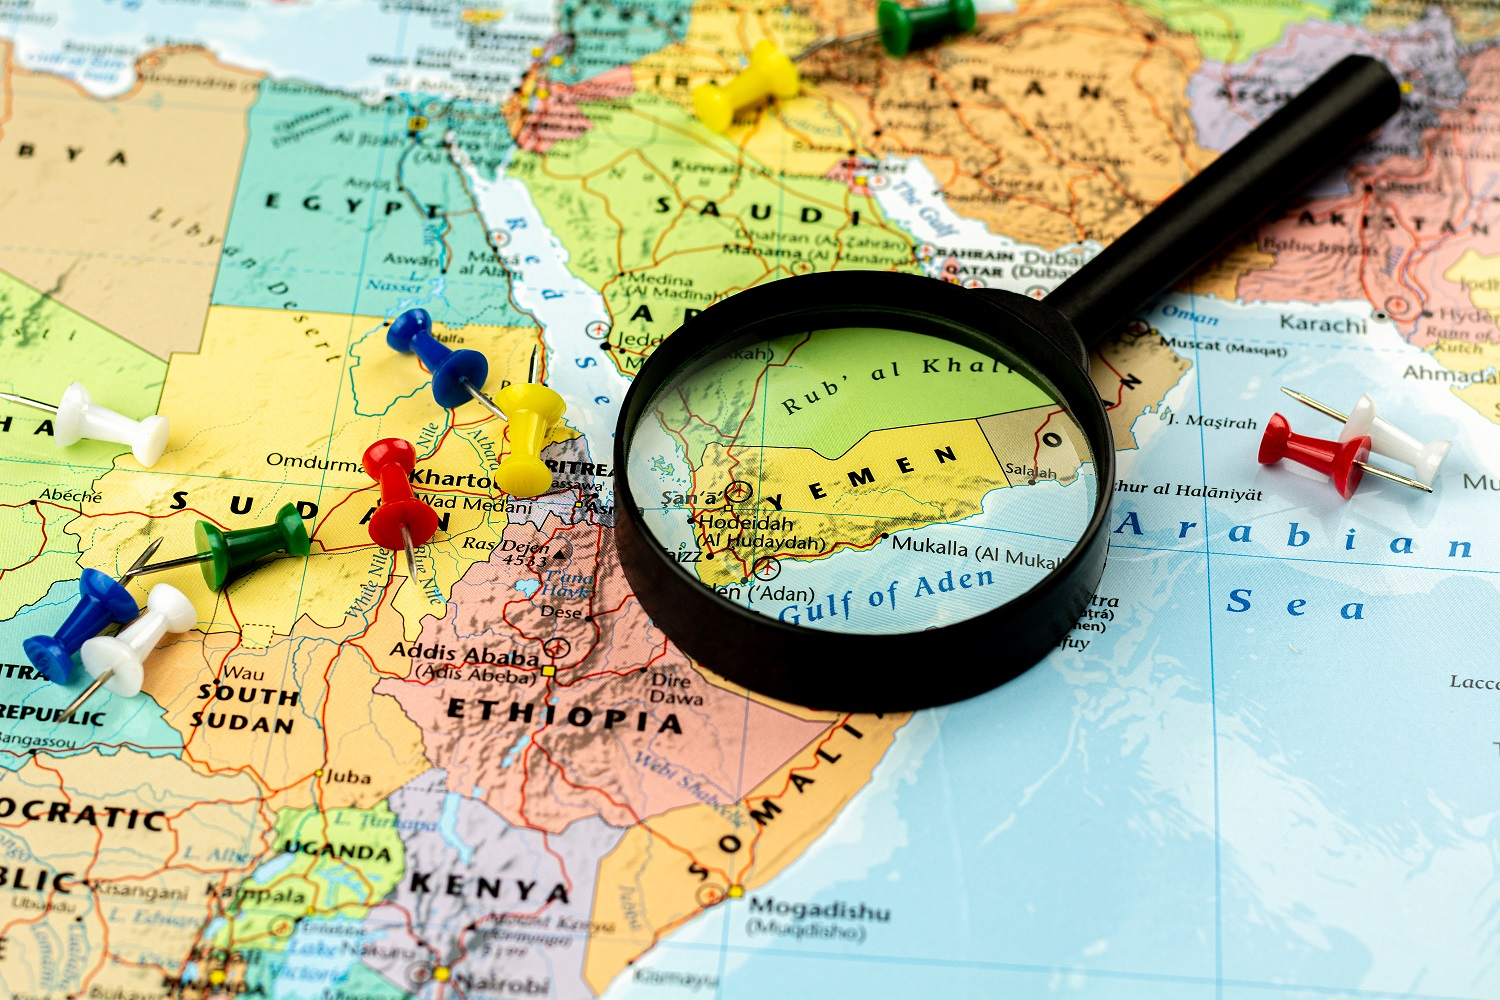 Bribery And Corruption Plague Middle East How Can Iso 37001